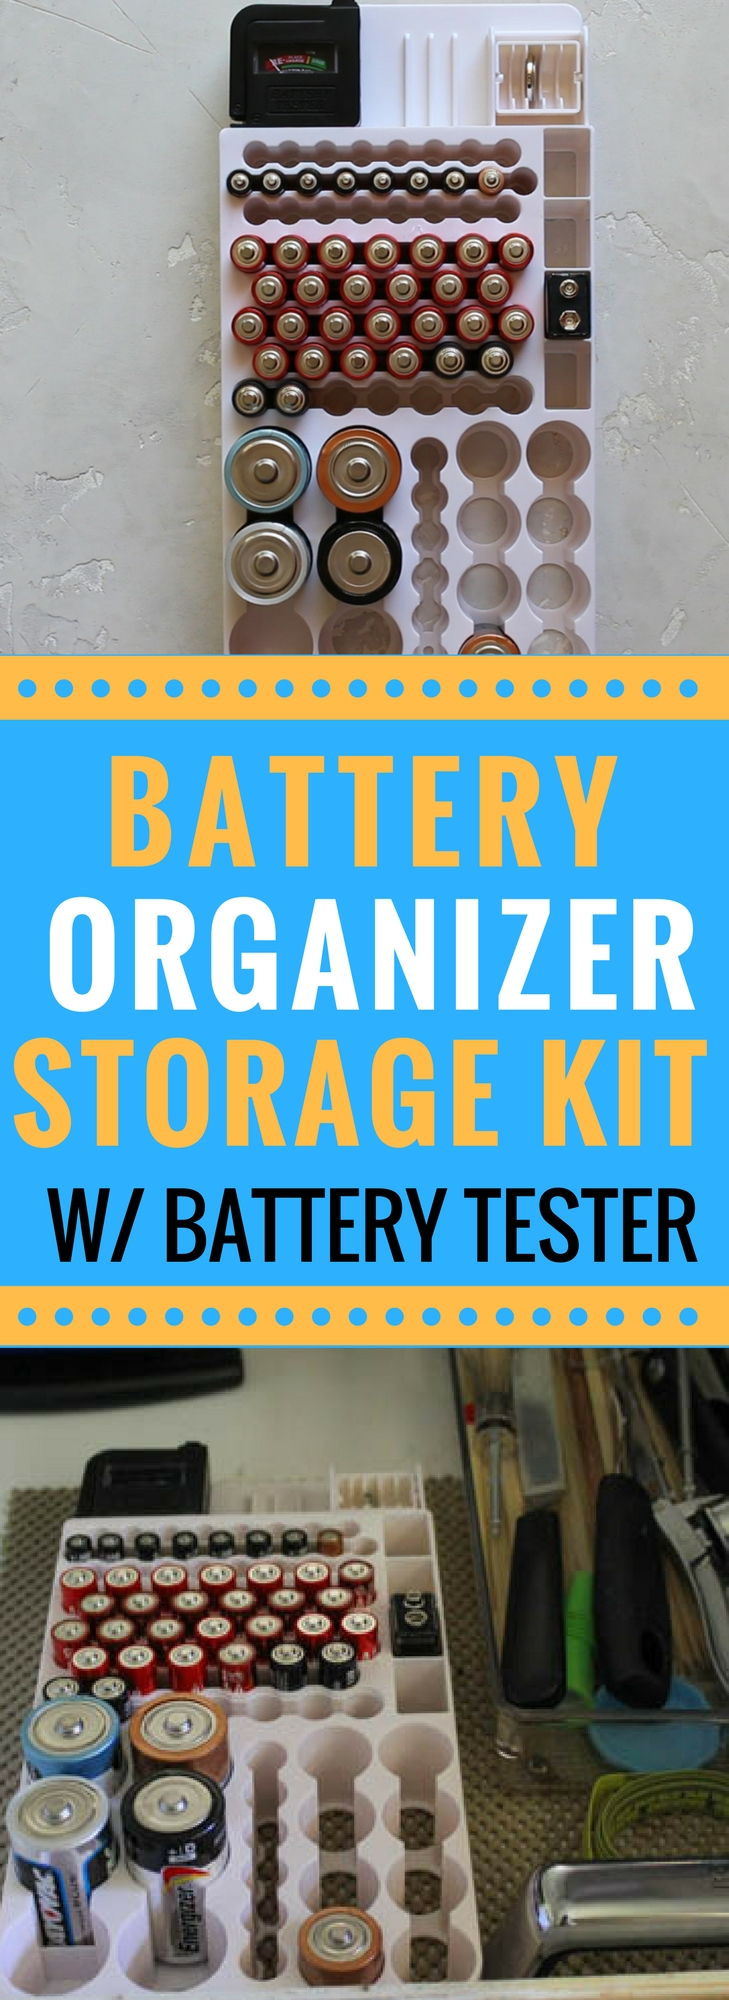 The best battery organizer w battery tester pandoras oem battery organization storage for your drawers organization cabinets battery organizer solutioingenieria Images